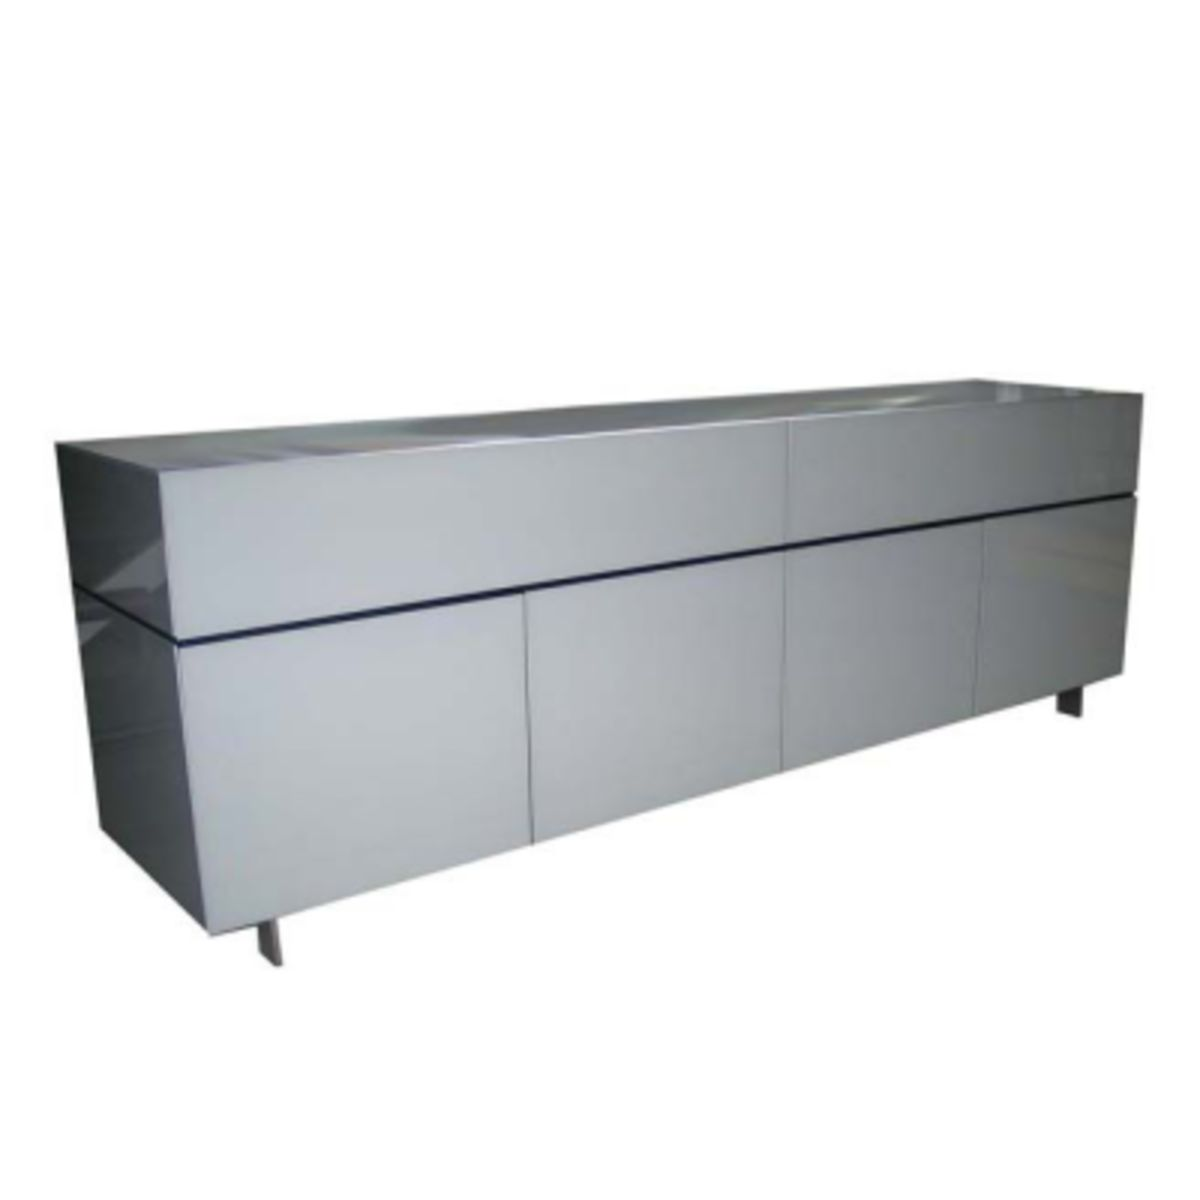 Globo Sideboard 2 With Cast Aluminium Legs Cabinets